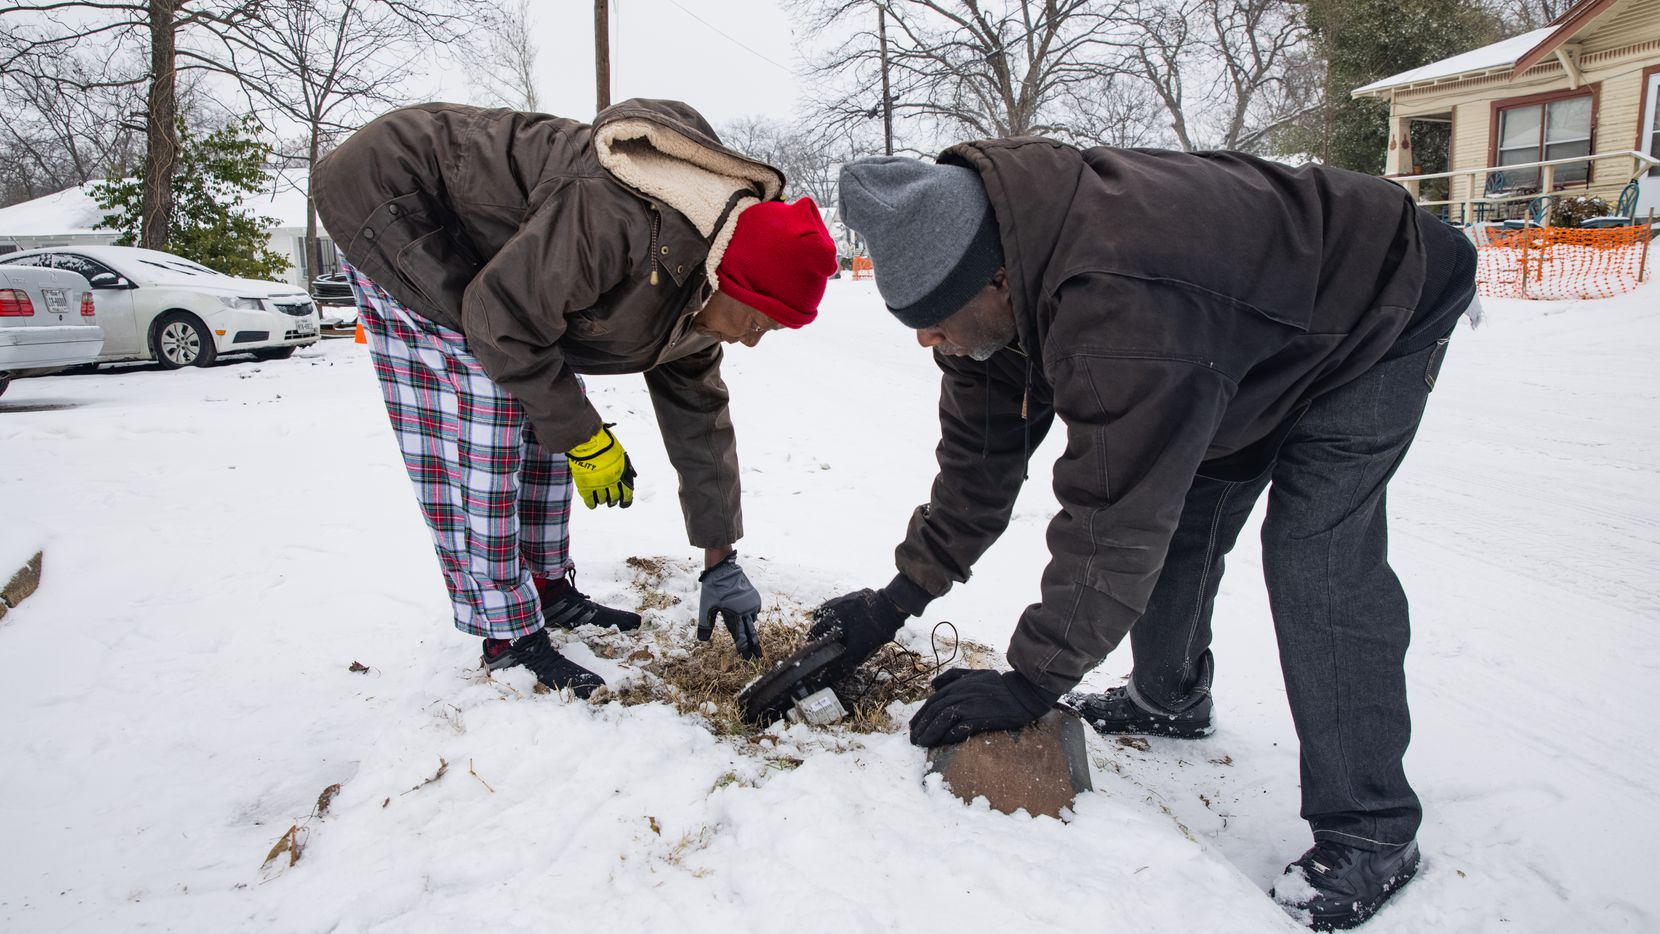 Patricia Broadway (left) and Leon Morris put the cover back after shutting the water off in Broadway's home in East Dallas on Feb. 17, 2021. Broadway noticed a pipe busted under her kitchen even though she said she did everything right.